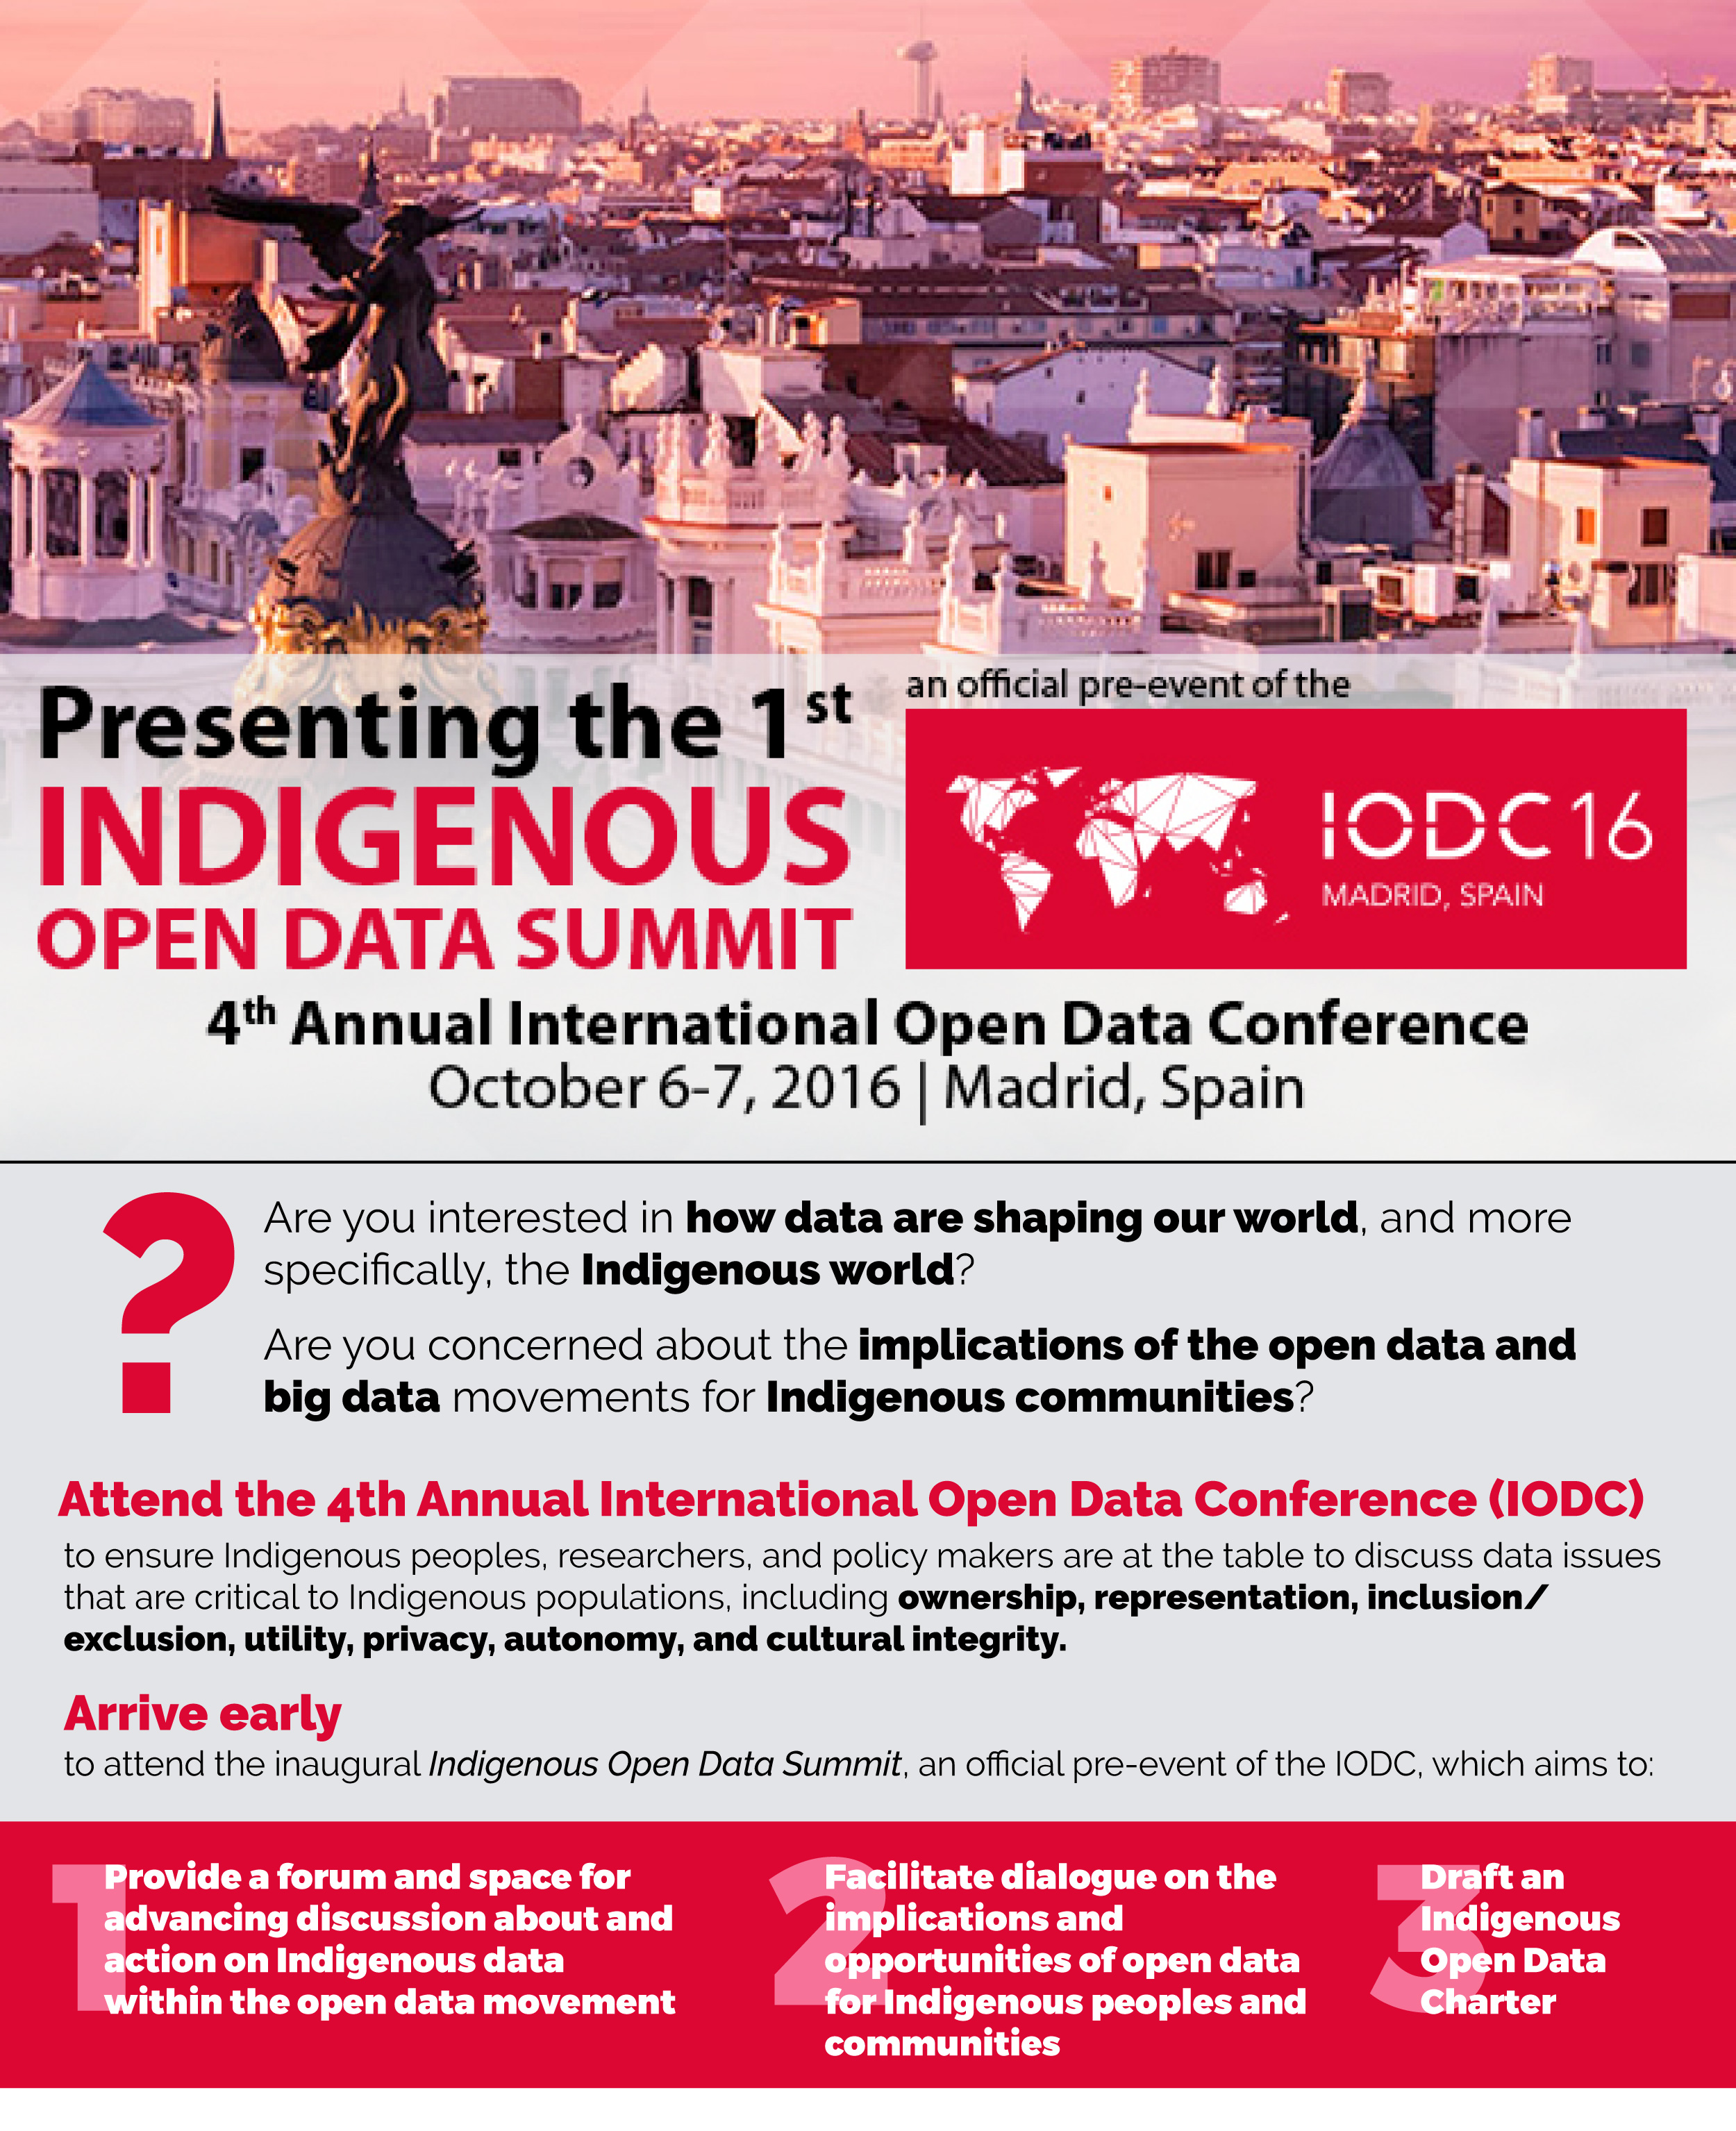 Presenting the 1st Indigenous Open Data Summit